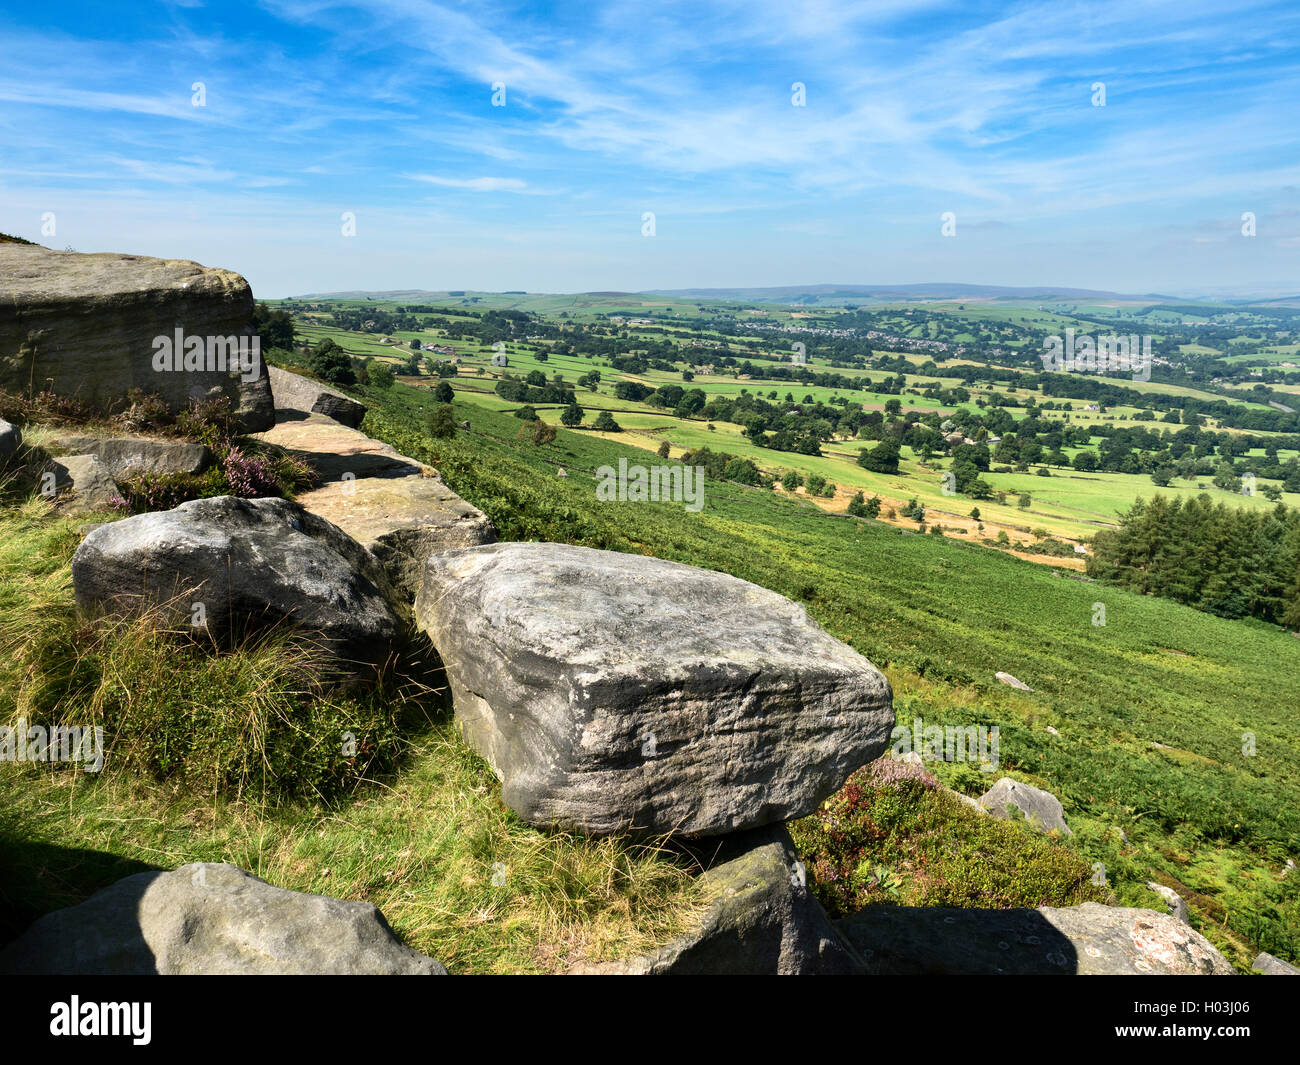 View over Wharfedale from Woodhouse Crag Ilkley Moor West Yorkshire England Stock Photo